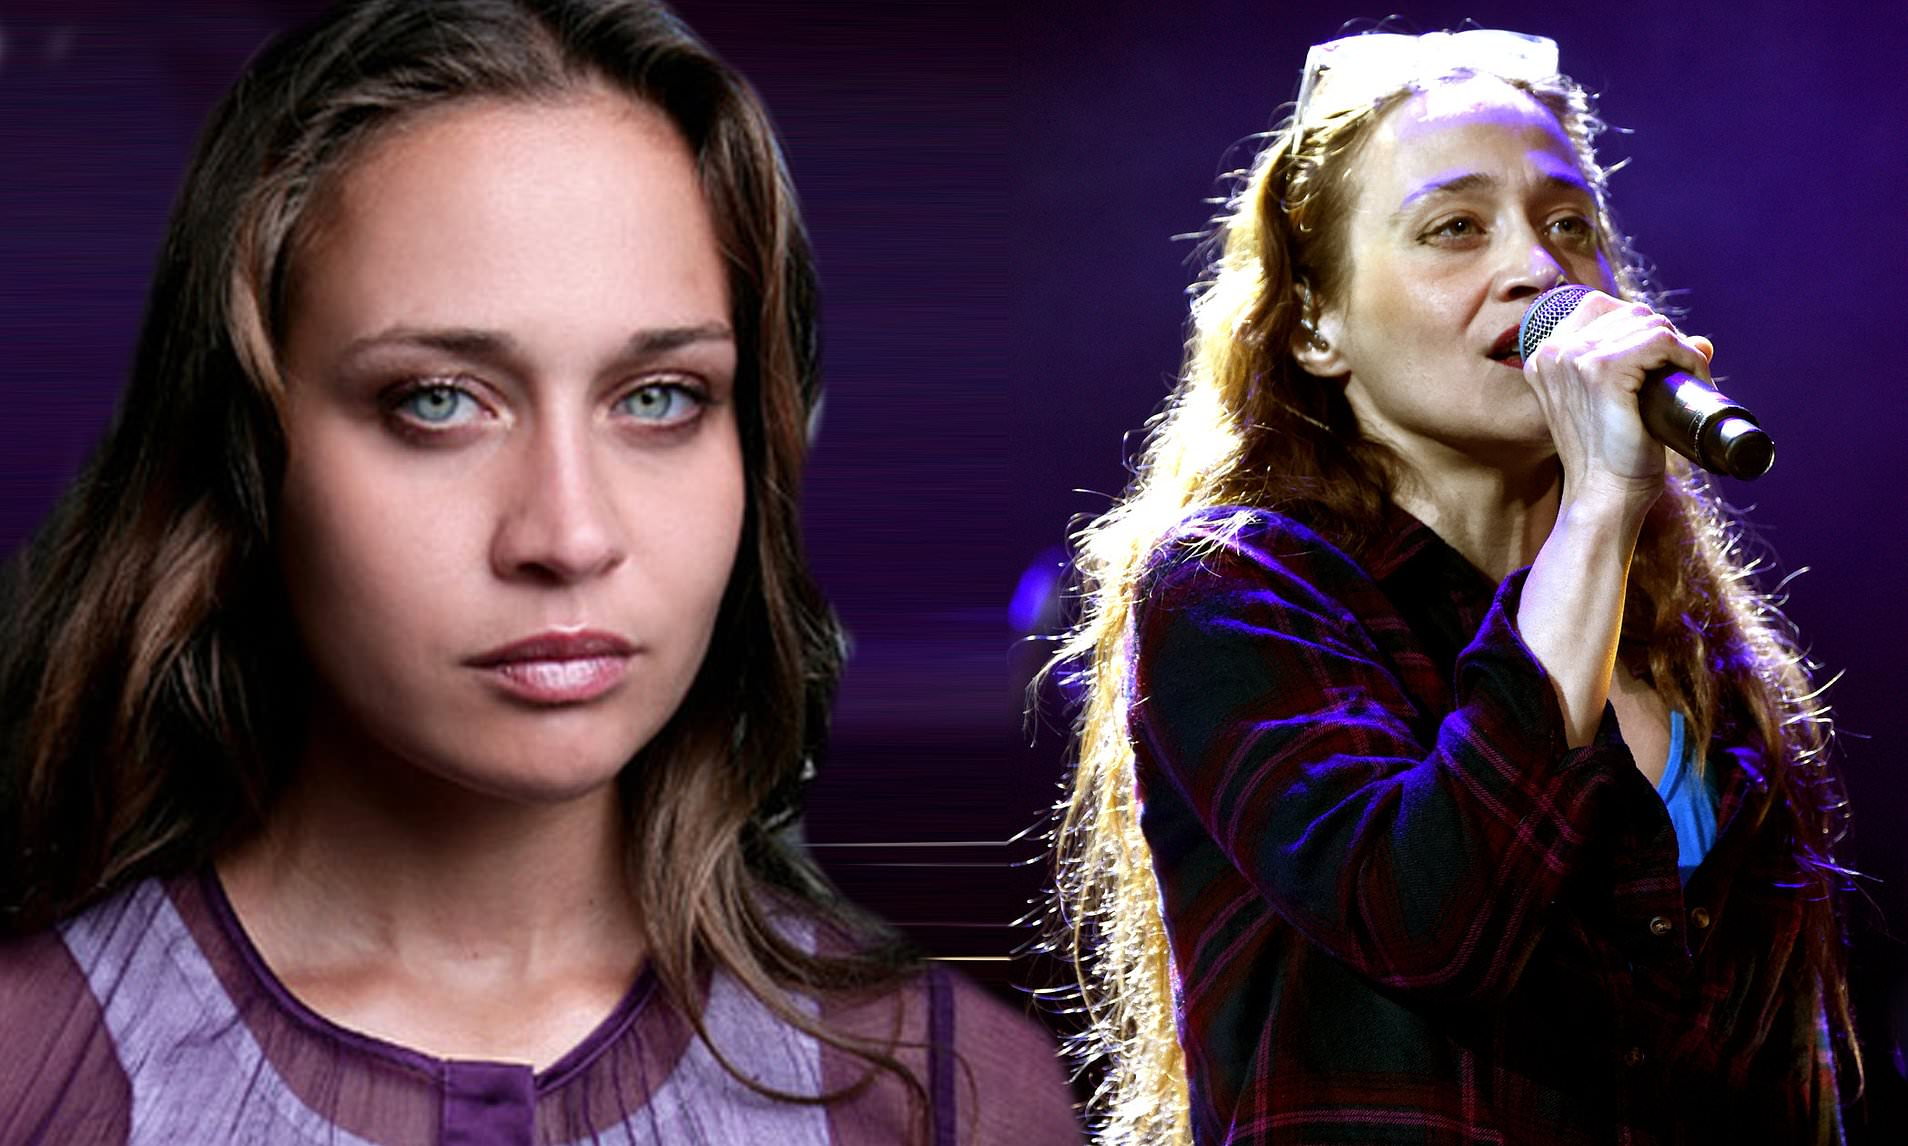 Fiona Apple Computer Wallpaper